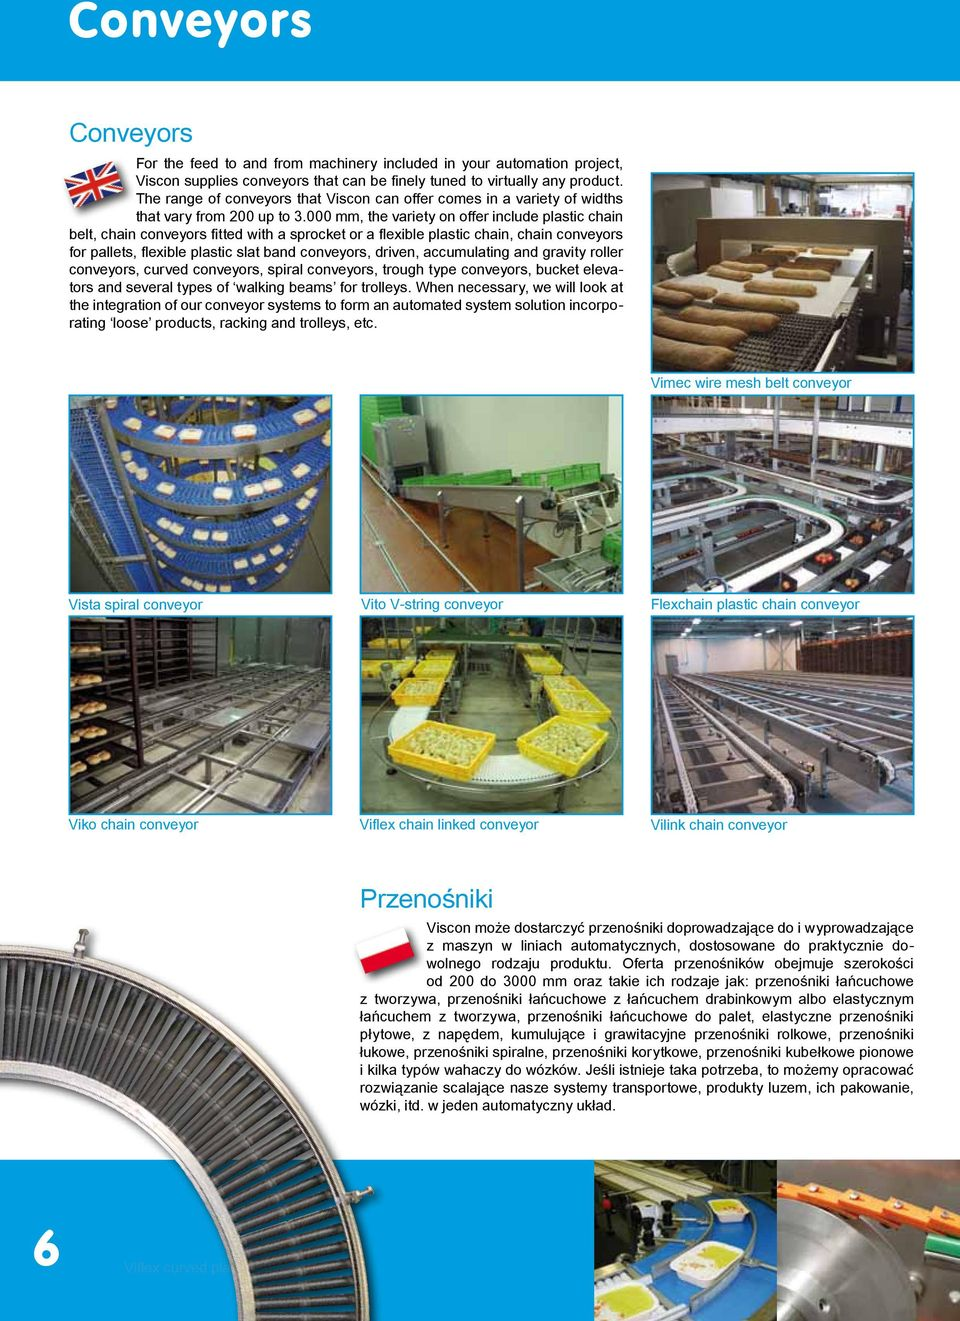 000 mm, the variety on offer include plastic chain belt, chain conveyors fitted with a sprocket or a flexible plastic chain, chain conveyors for pallets, flexible plastic slat band conveyors, driven,